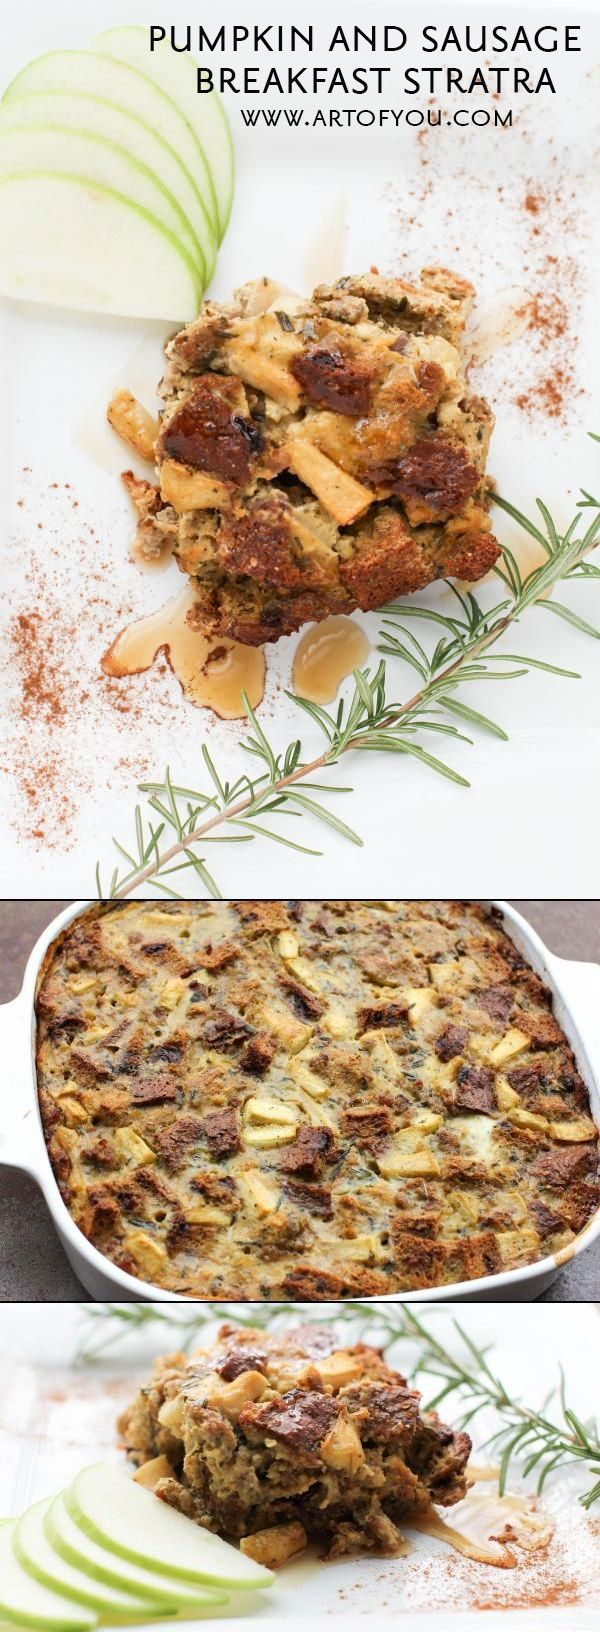 Everything you could want for Christmas morning breakfast in a delicious, hearty and healthy strata! http://www.lauralaire.com/pumpkin-and-sausage-strata/